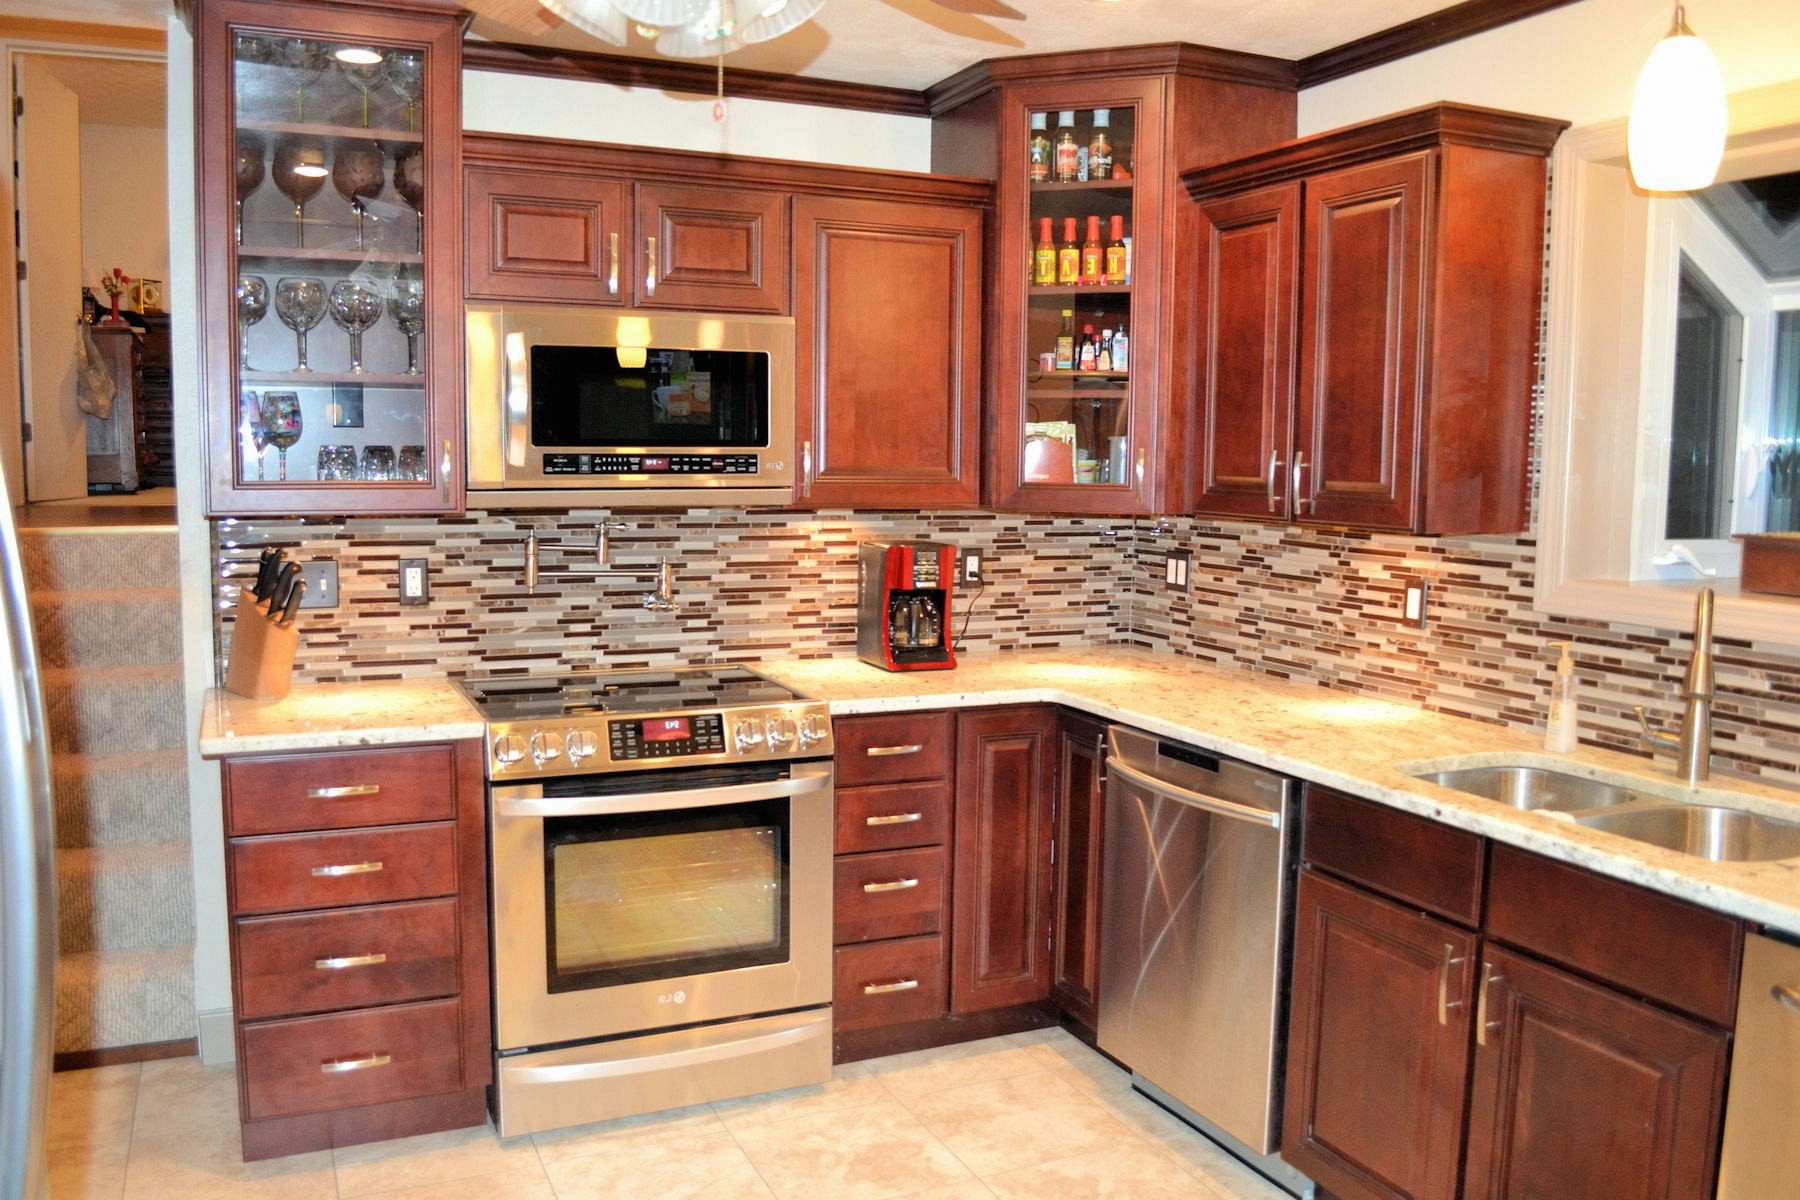 kitchen color schemes with cherry cabinets best kitchen color with cherry cabinets KBHZBMS